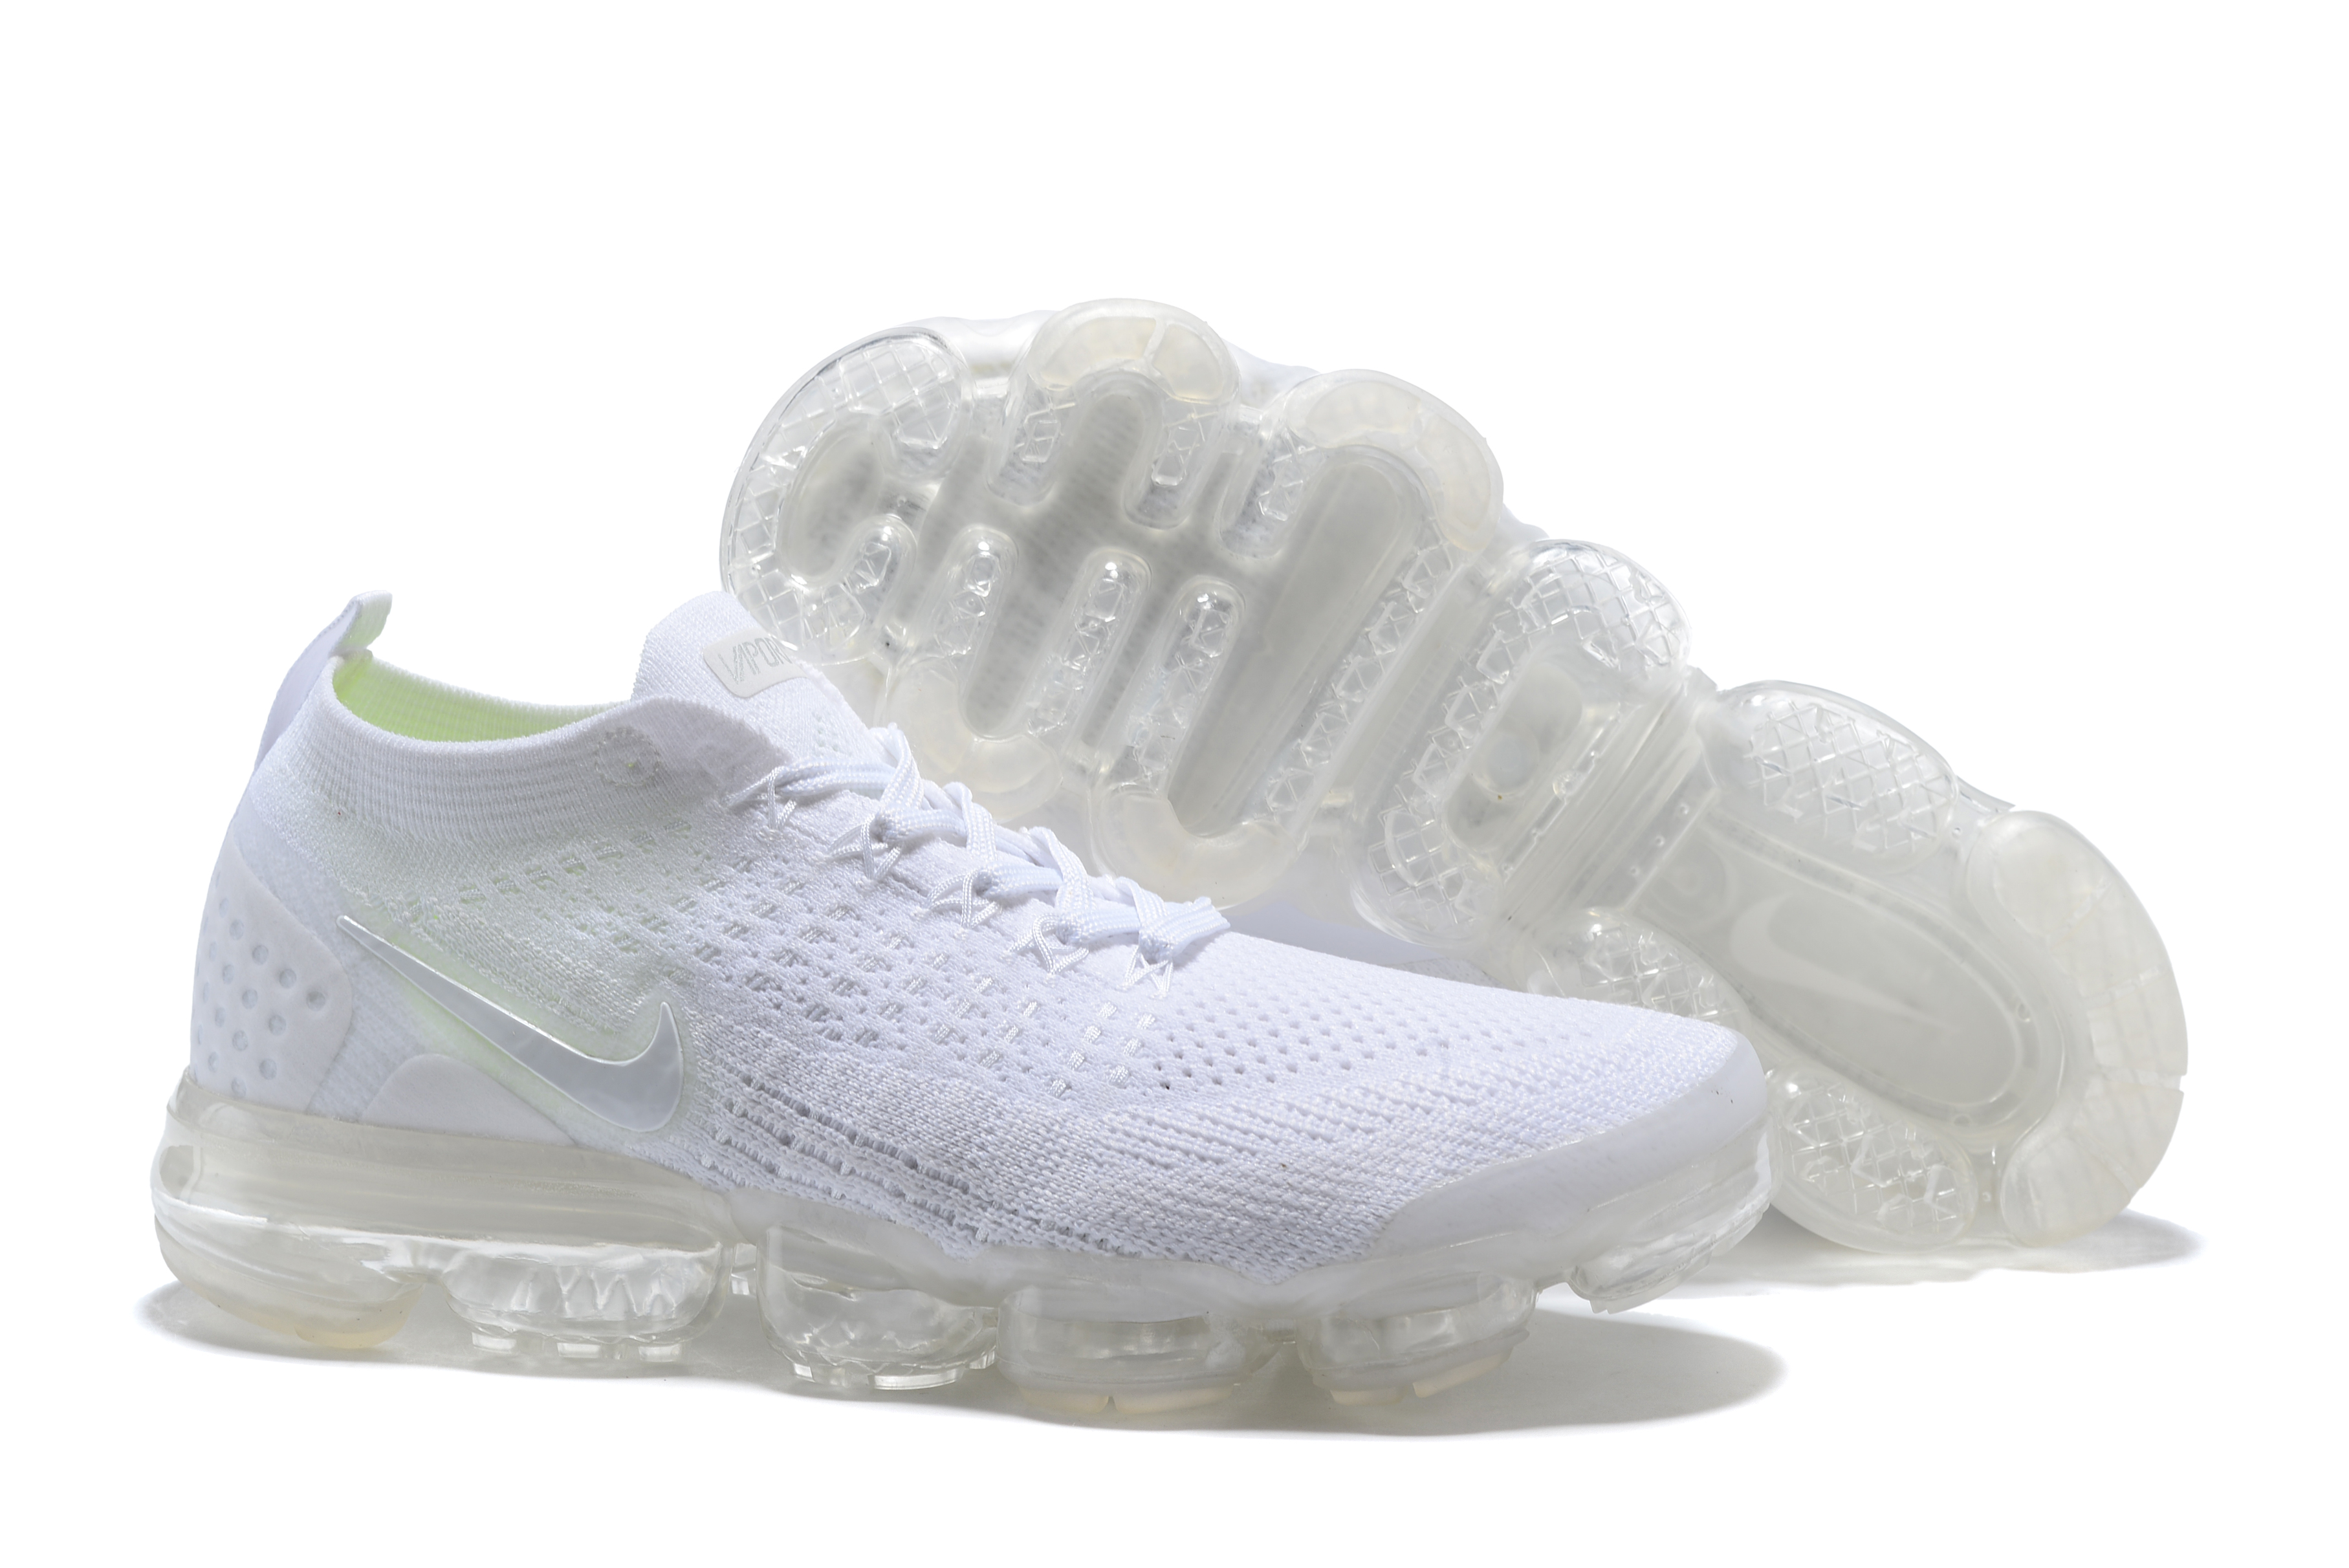 2018 Nike Air VaporMax II All White Shoes